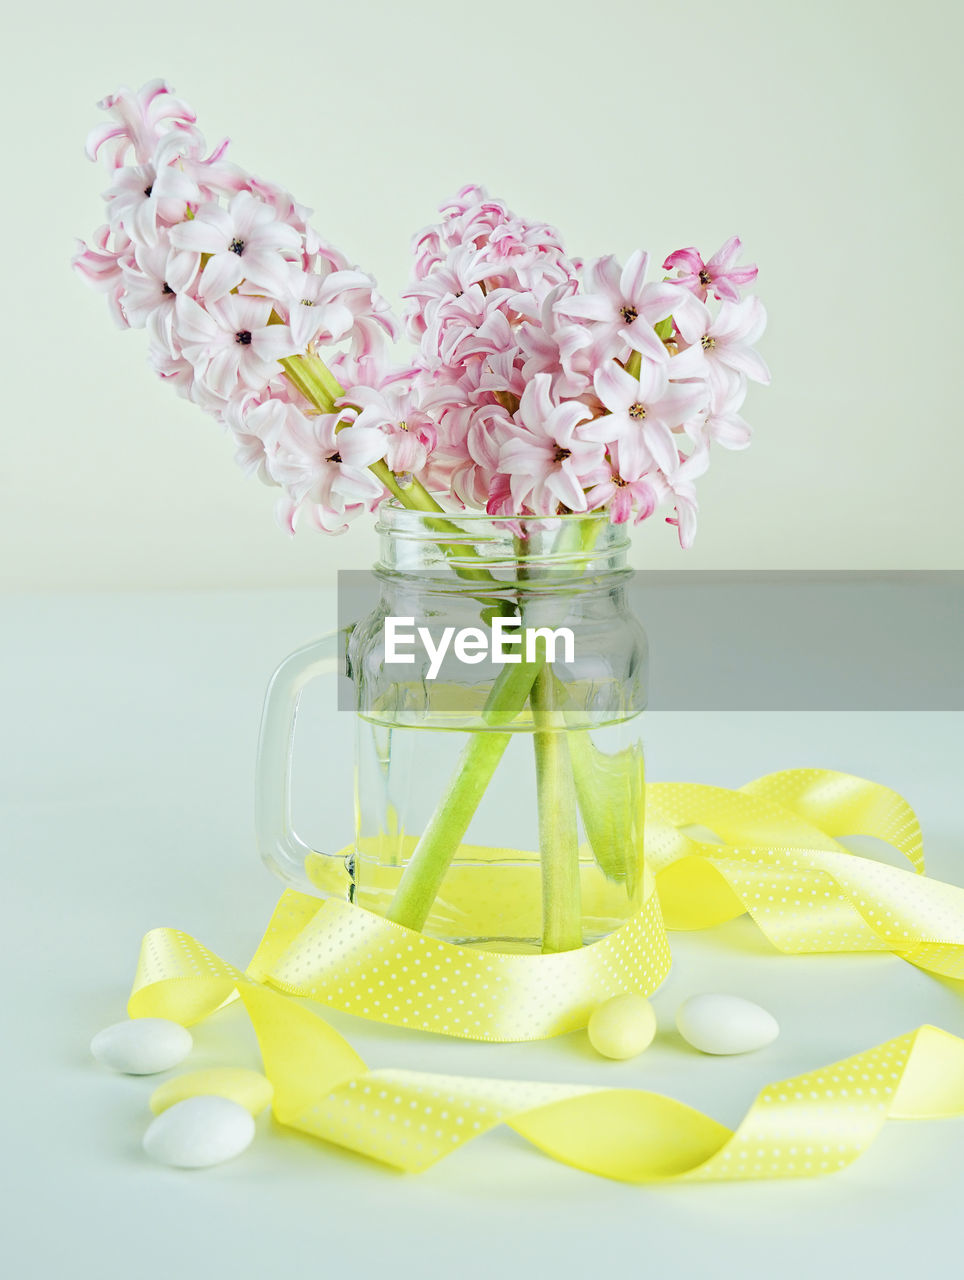 flower, flowering plant, freshness, table, plant, container, indoors, nature, still life, beauty in nature, no people, jar, glass - material, close-up, fragility, vulnerability, vase, transparent, studio shot, flower head, flower arrangement, lilac